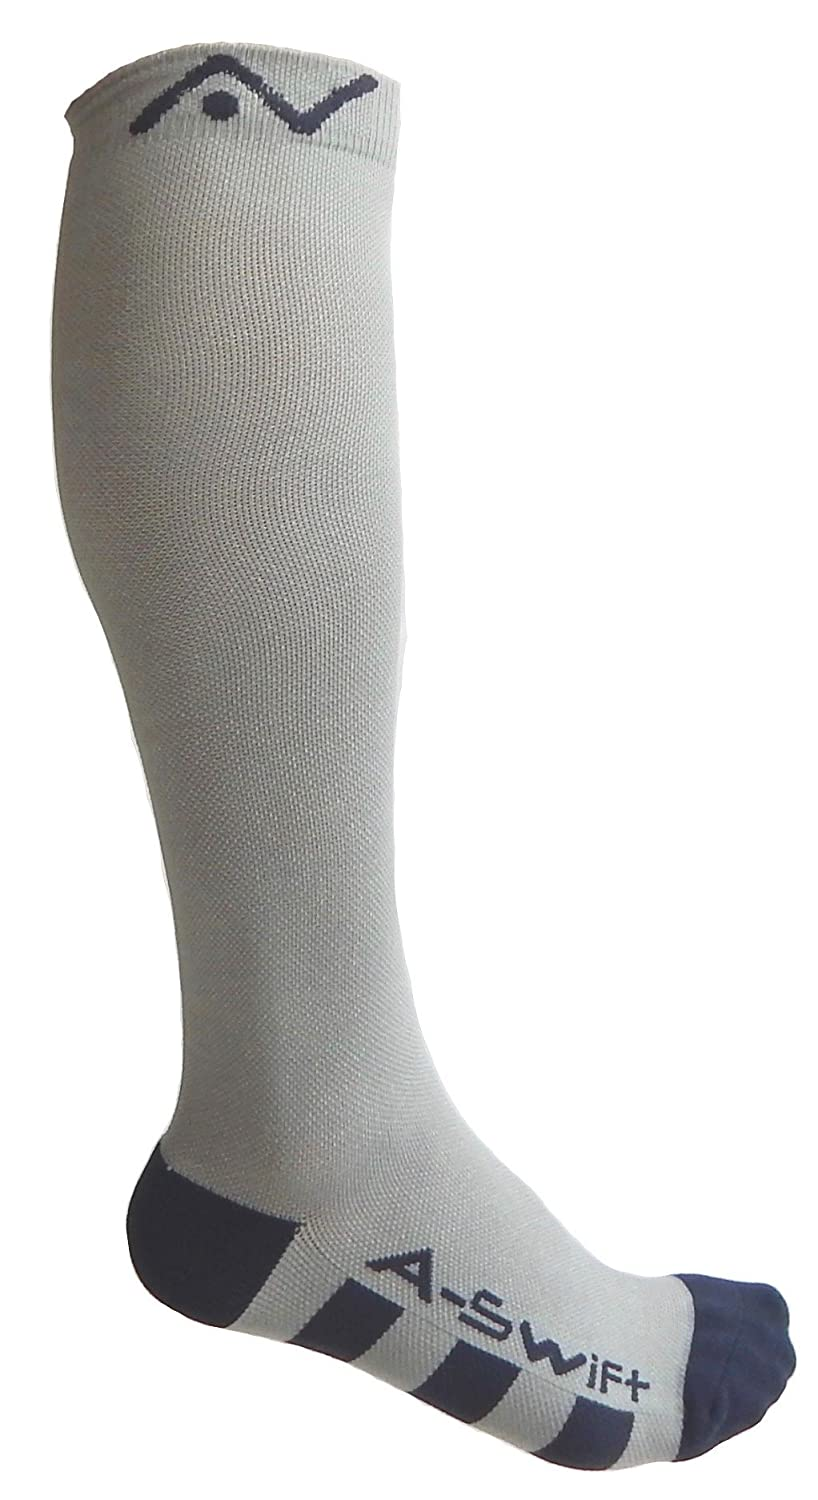 Compression Socks for Men and Women by A-swift